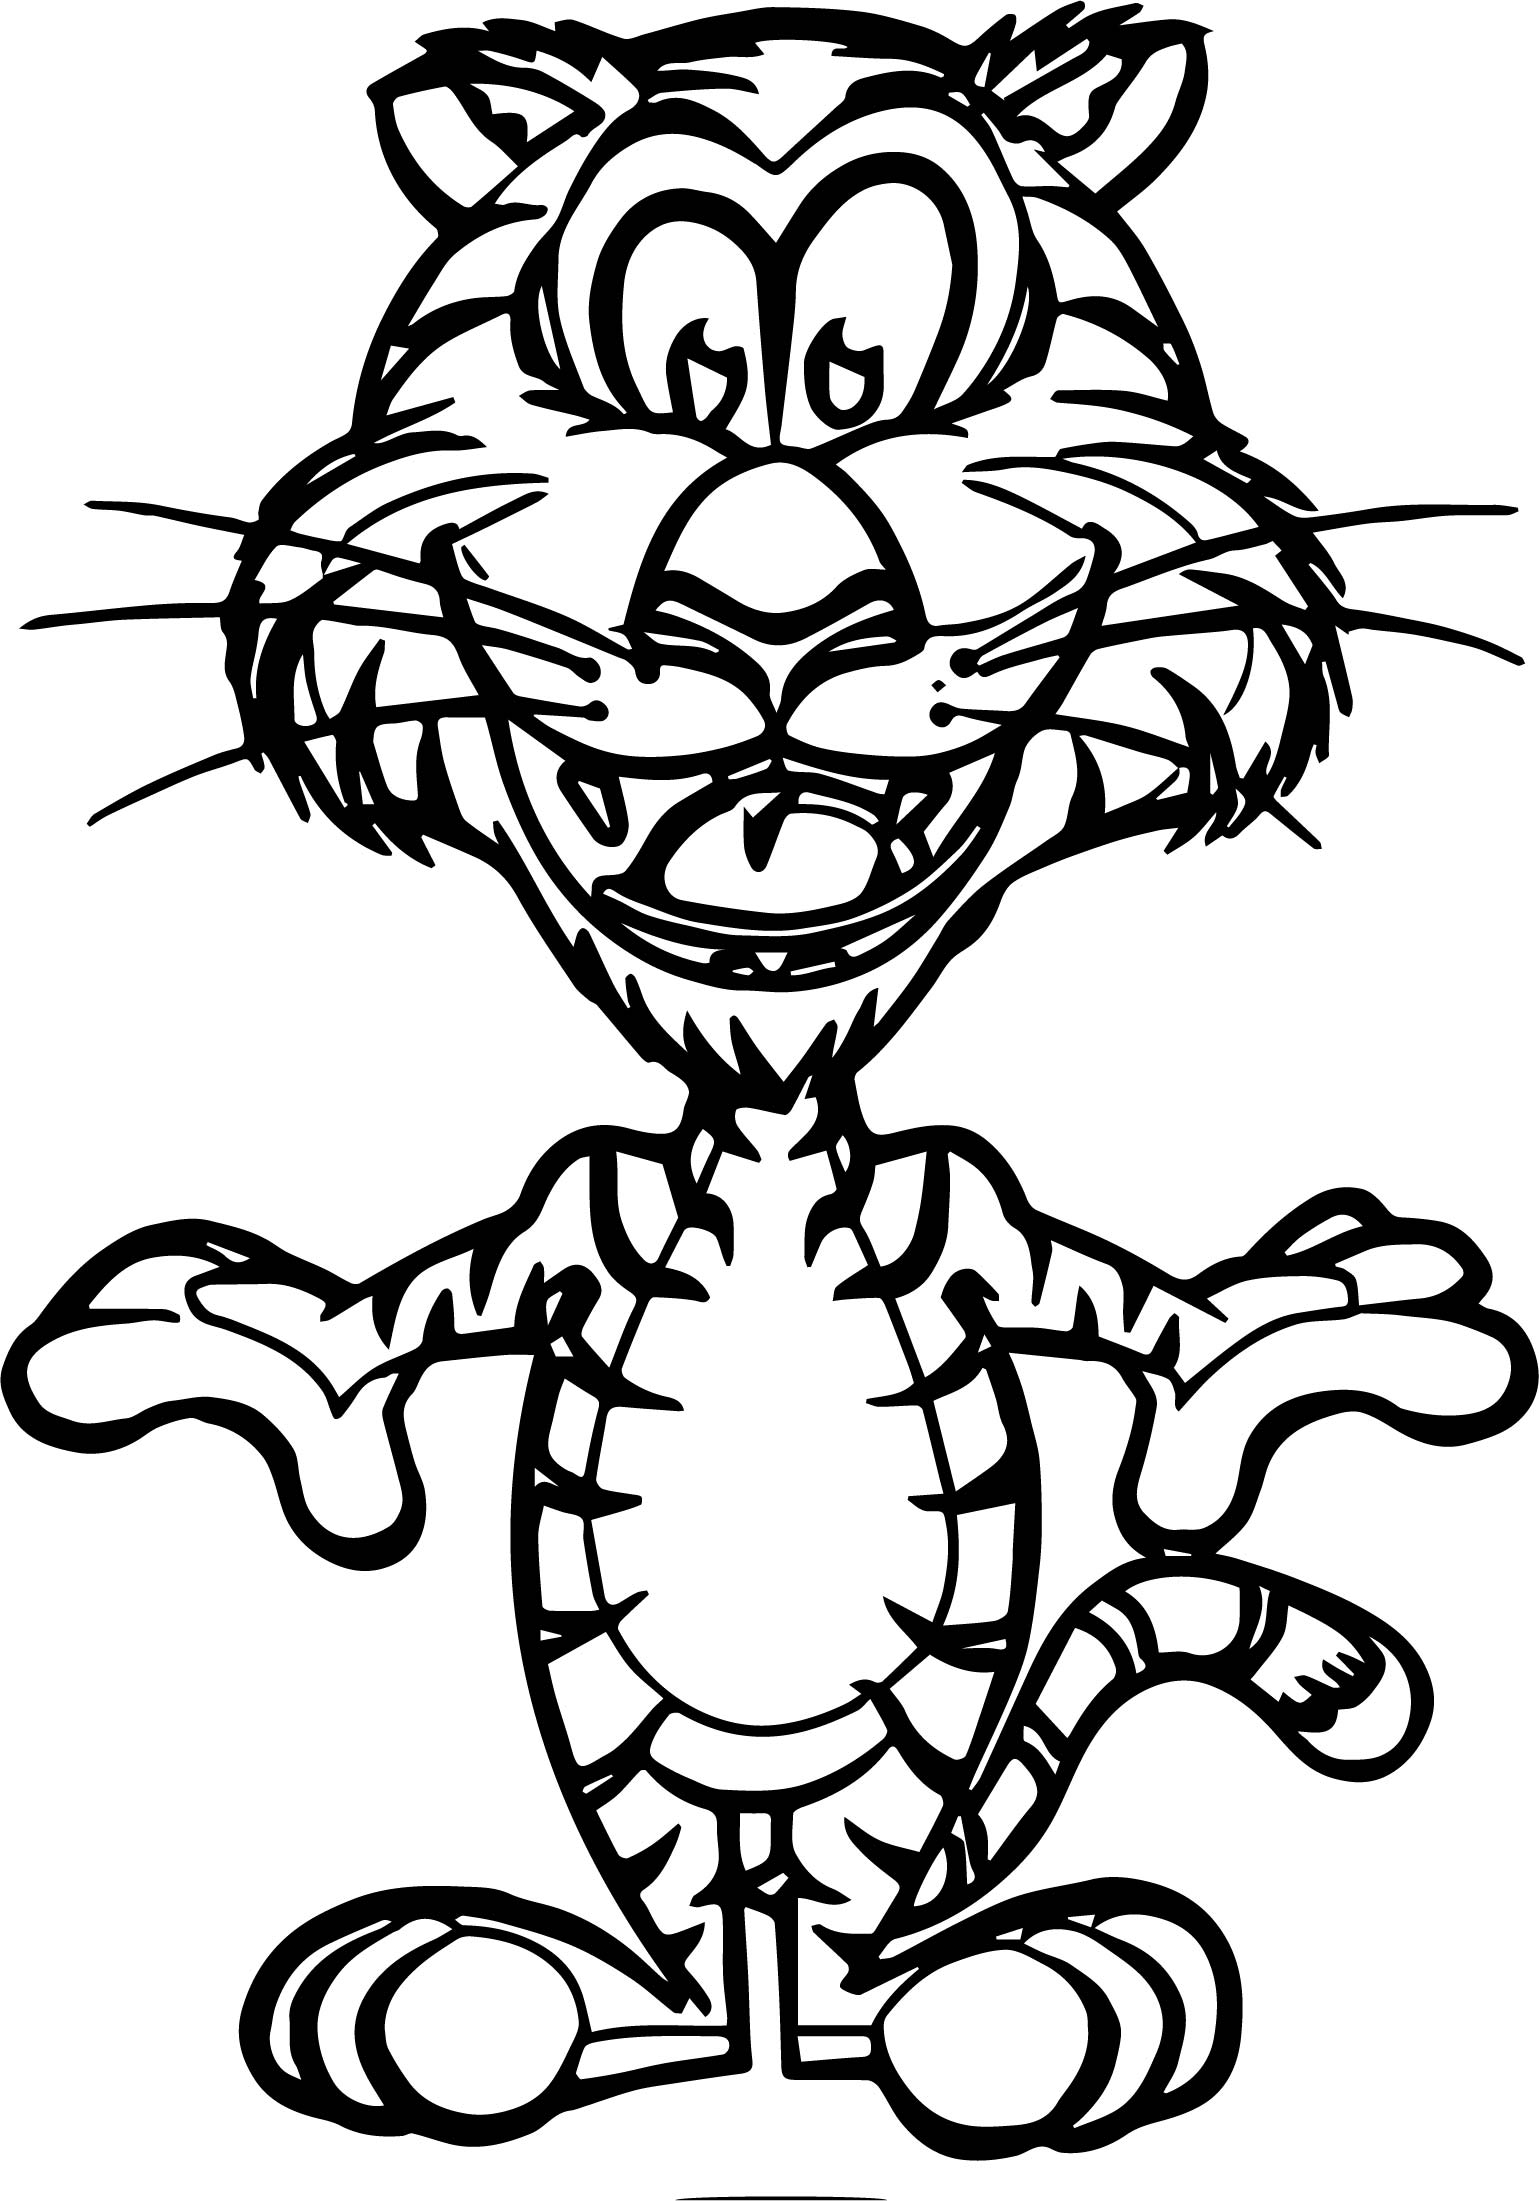 Funny Small Tiger Coloring Page